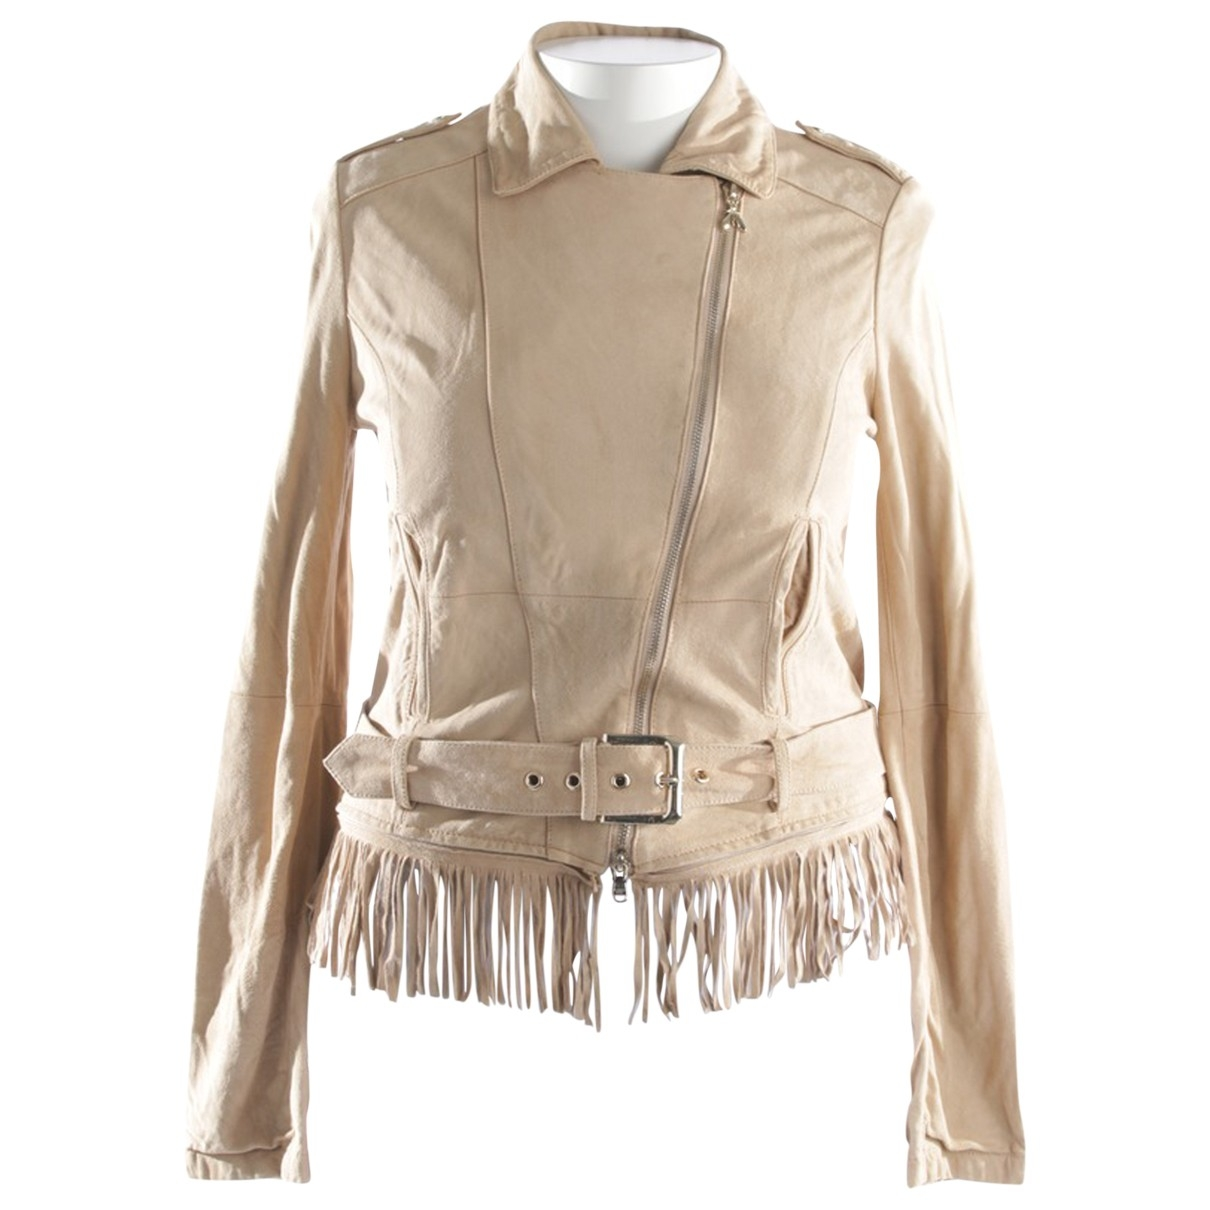 Patrizia Pepe \N Beige jacket for Women 40 FR